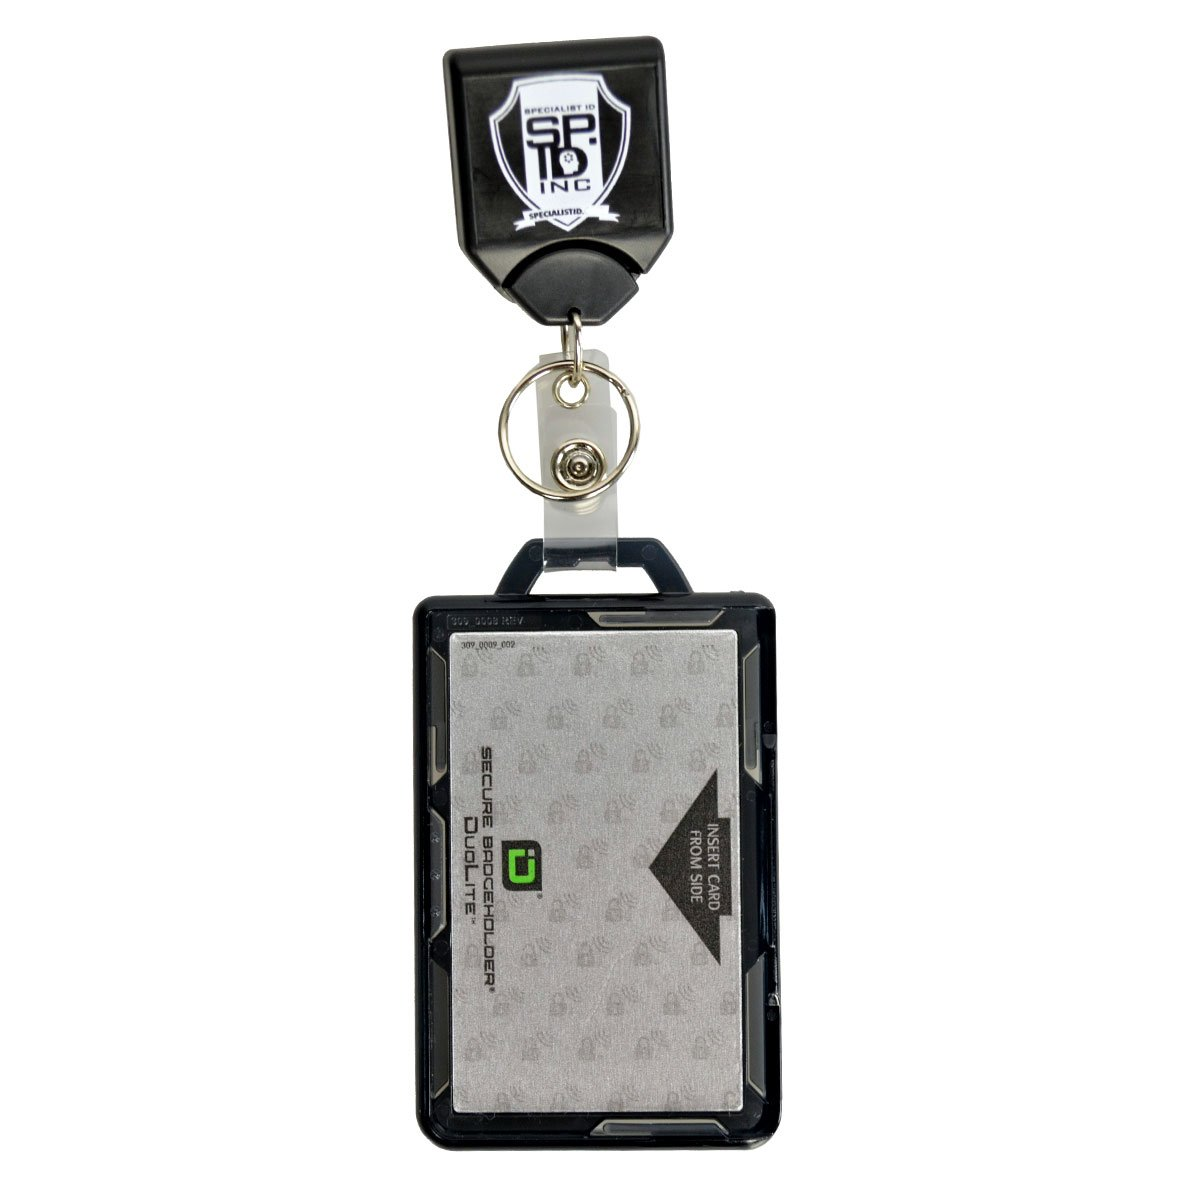 Specialist ID Heavy Duty Badge and Key Reel with Identity Stronghold RFID Blocking Multi Card Holder